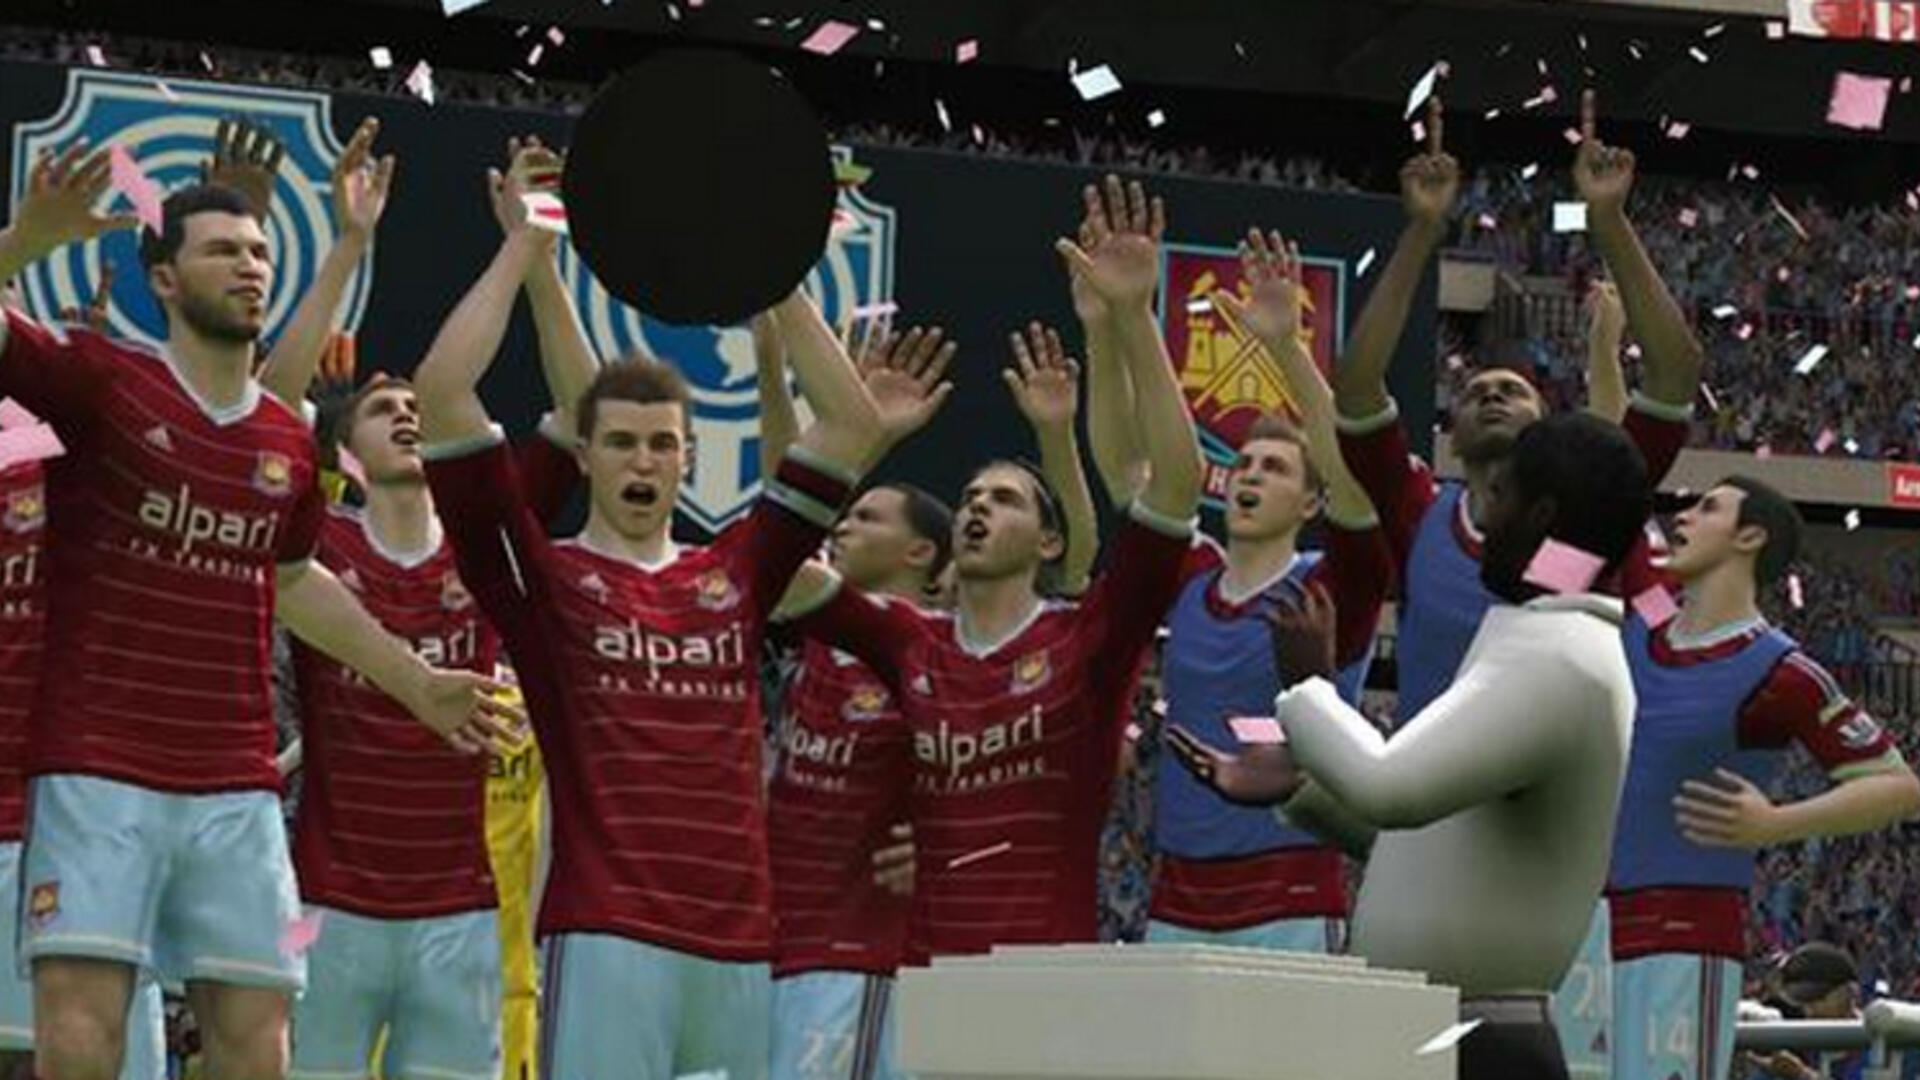 The One Change That Made My FIFA Career One of My Most Compelling Gaming Experiences in Years